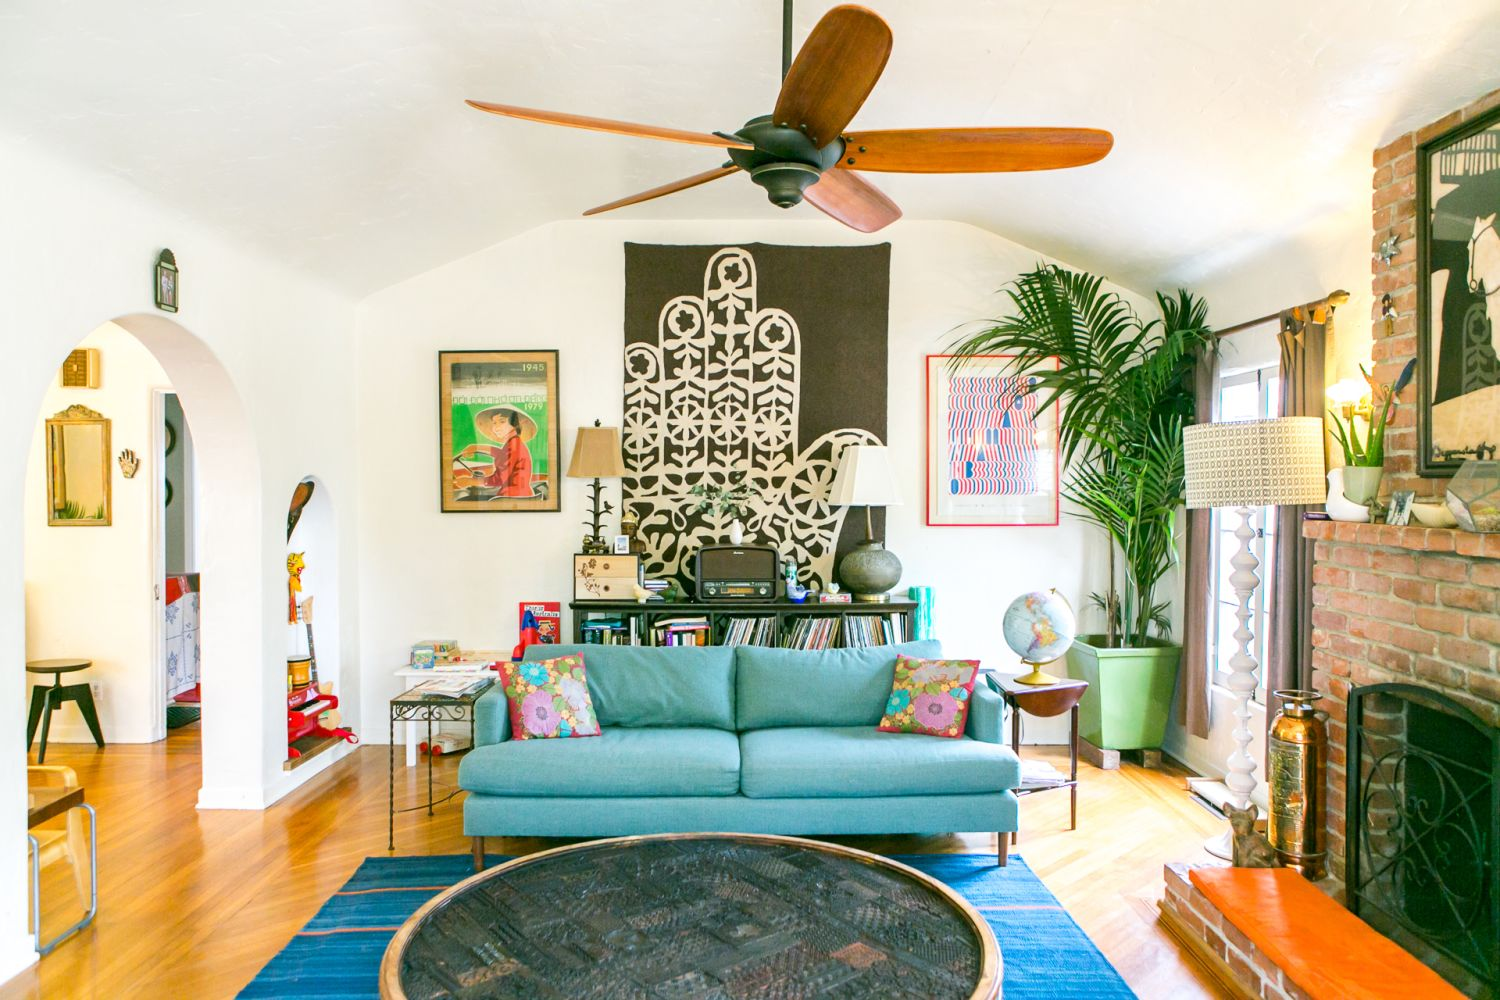 Winter Tip Reverse Your Ceiling Fan Direction And Save Energy Apartment Therapy